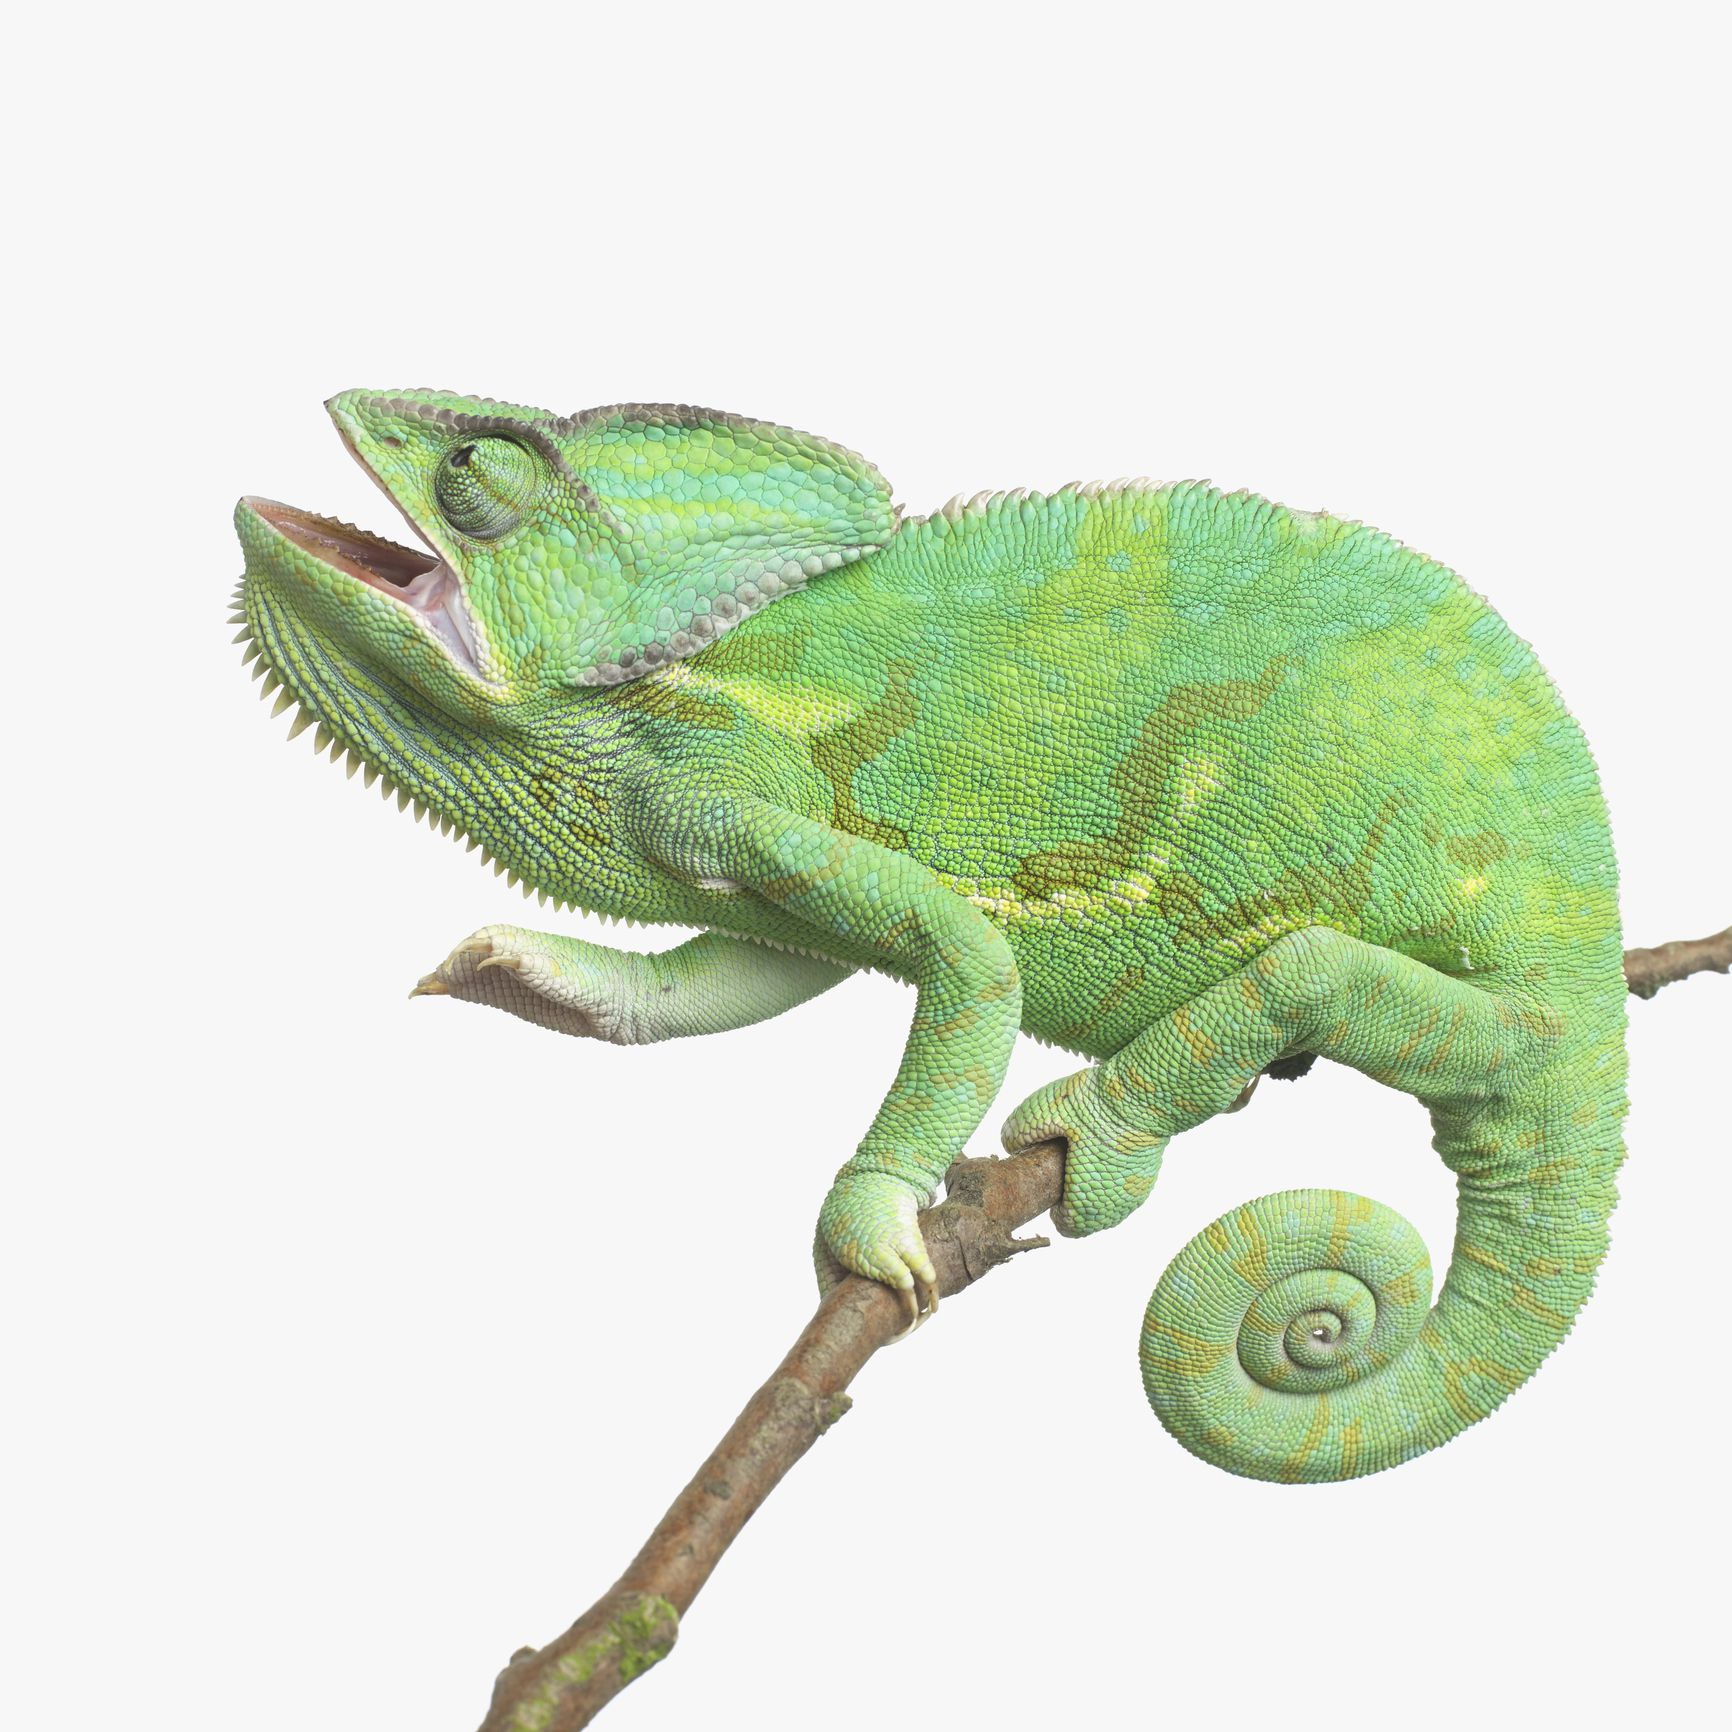 interior design in small kitchen with Choosing A Pet Chameleon 1238539 on Botanical Poster Plant furthermore Choosing A Pet Chameleon 1238539 furthermore Buying Ceramic Floor Tile 1314911 additionally Industrial additionally Clerestory Window.